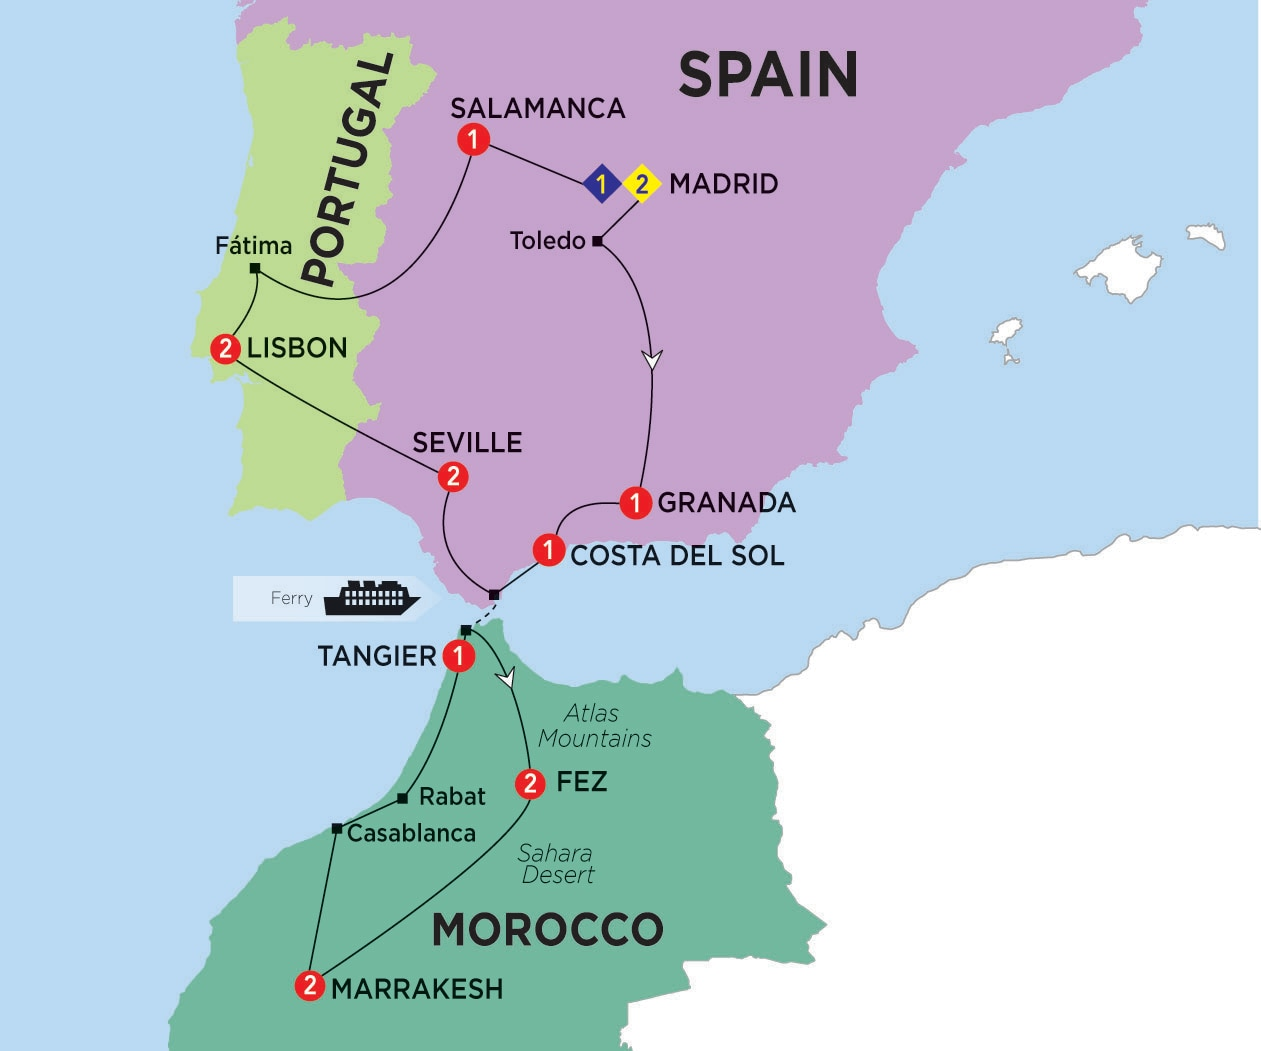 Map Of Spain Morocco And Portugal.Map Of Spain And Morocco Year Of Clean Water